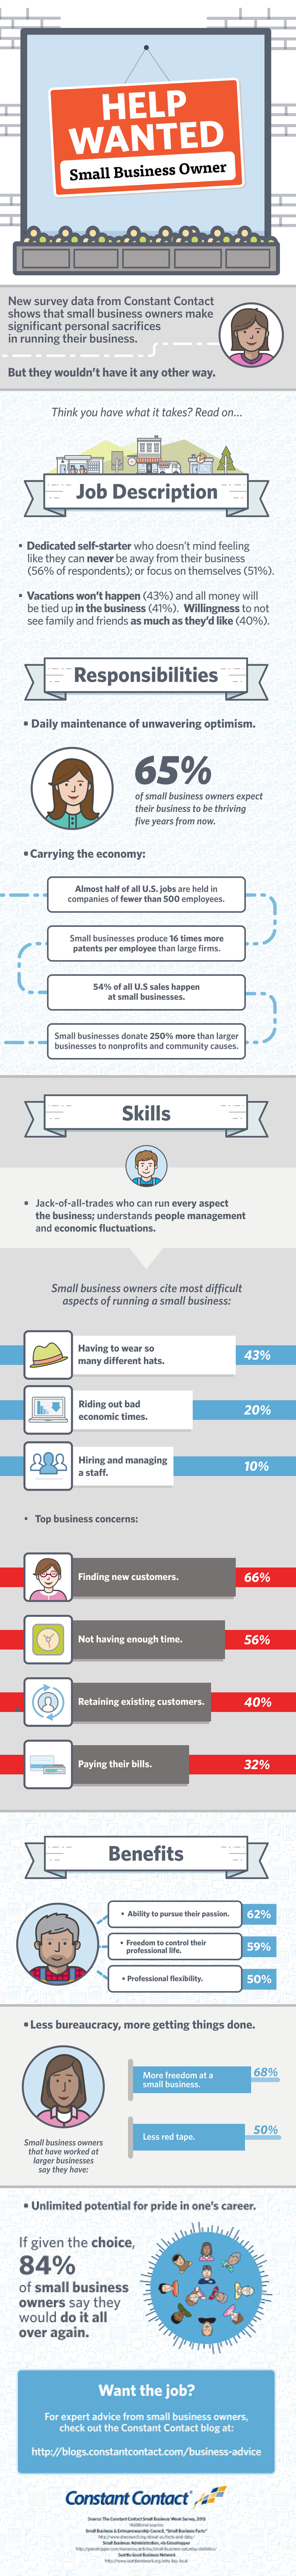 1430742044-what-it-takes-be-small-business-owner-infographic